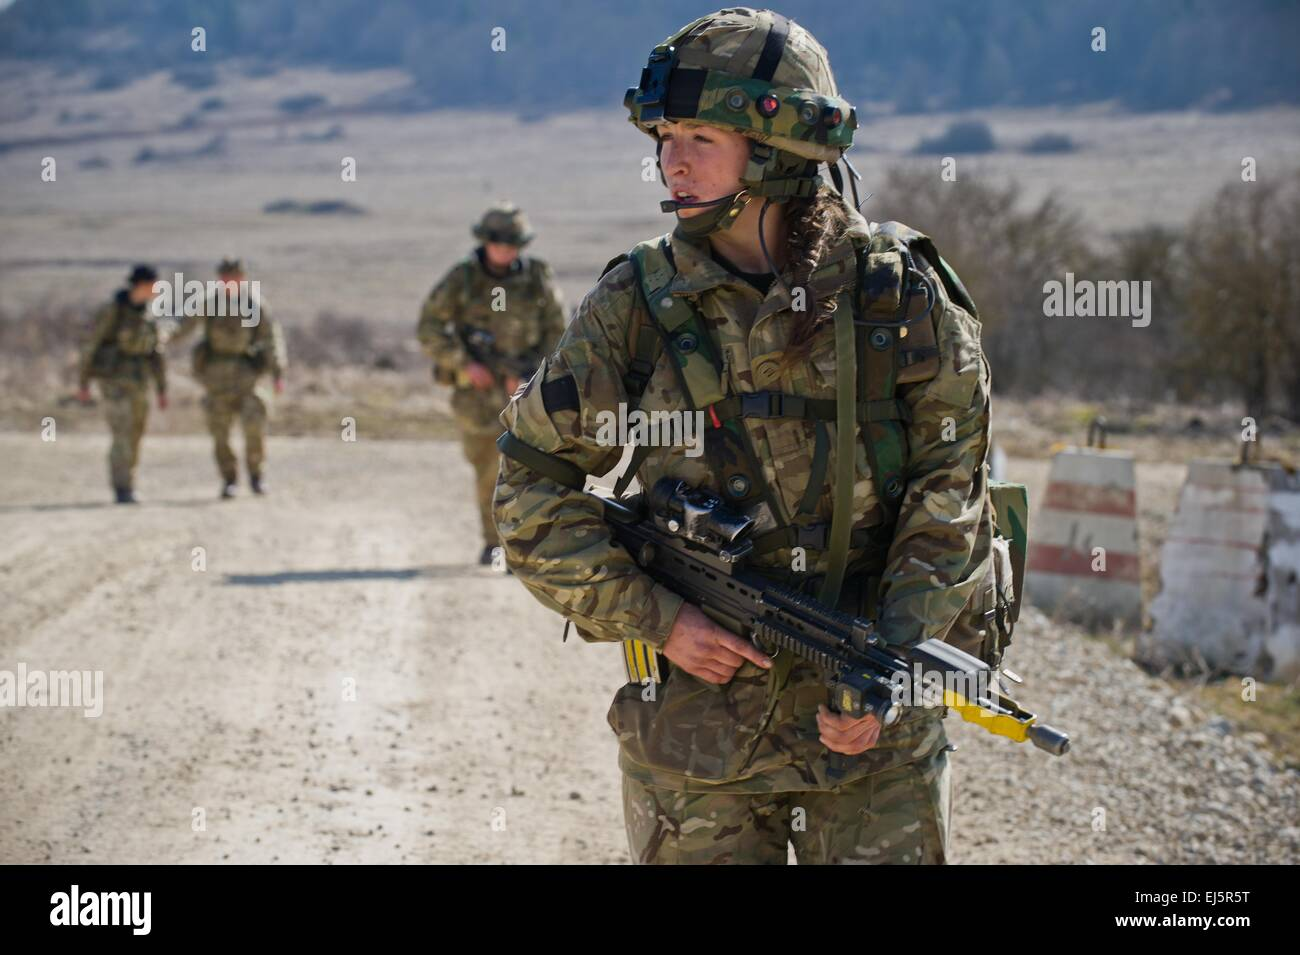 A British cadet of the Royal Military Academy Sandhurst yells to fellow cadets during final evaluation and validation - Stock Image